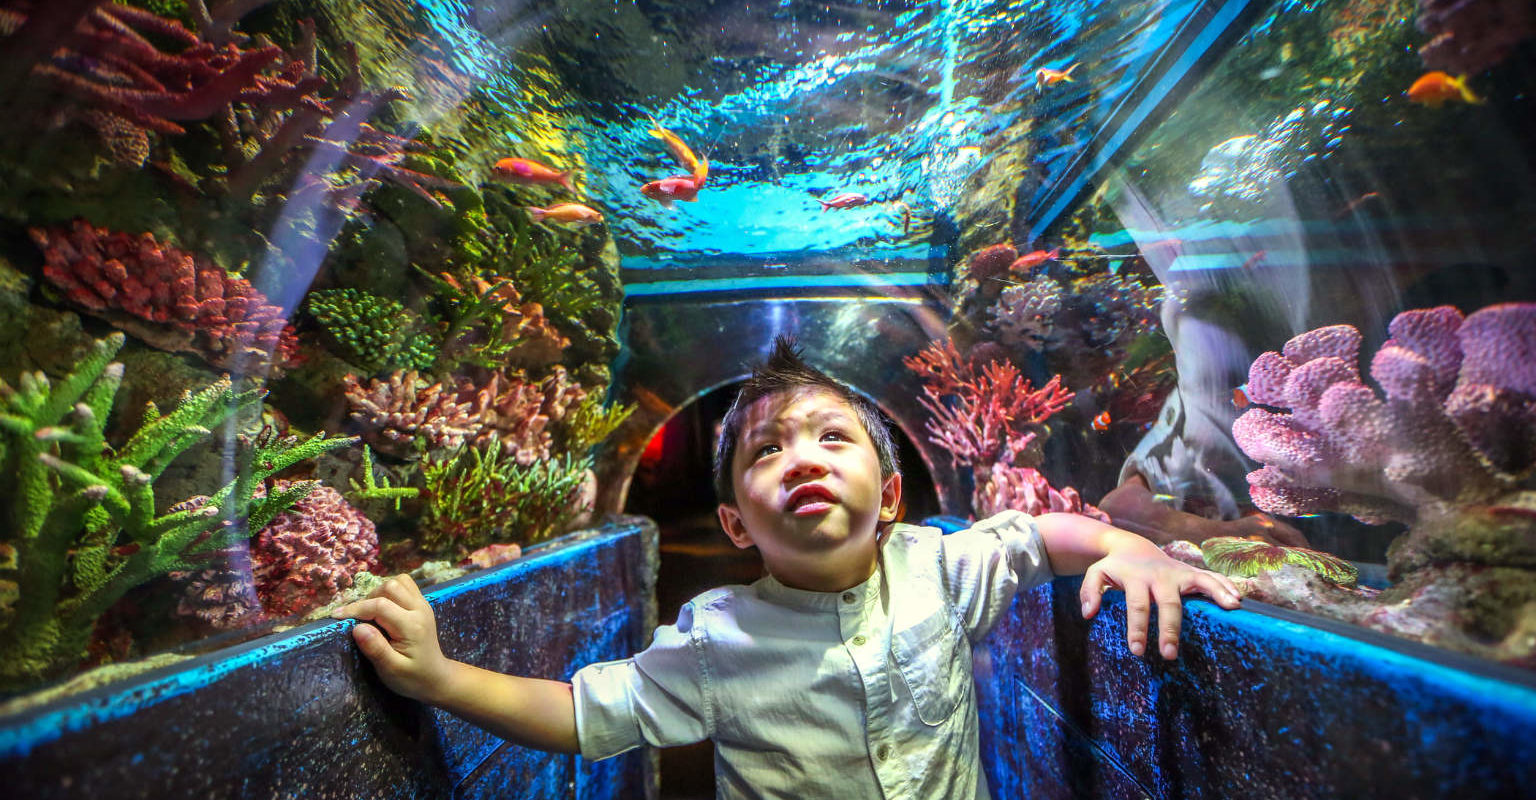 Siam Square, See life, kinderen in aquarium